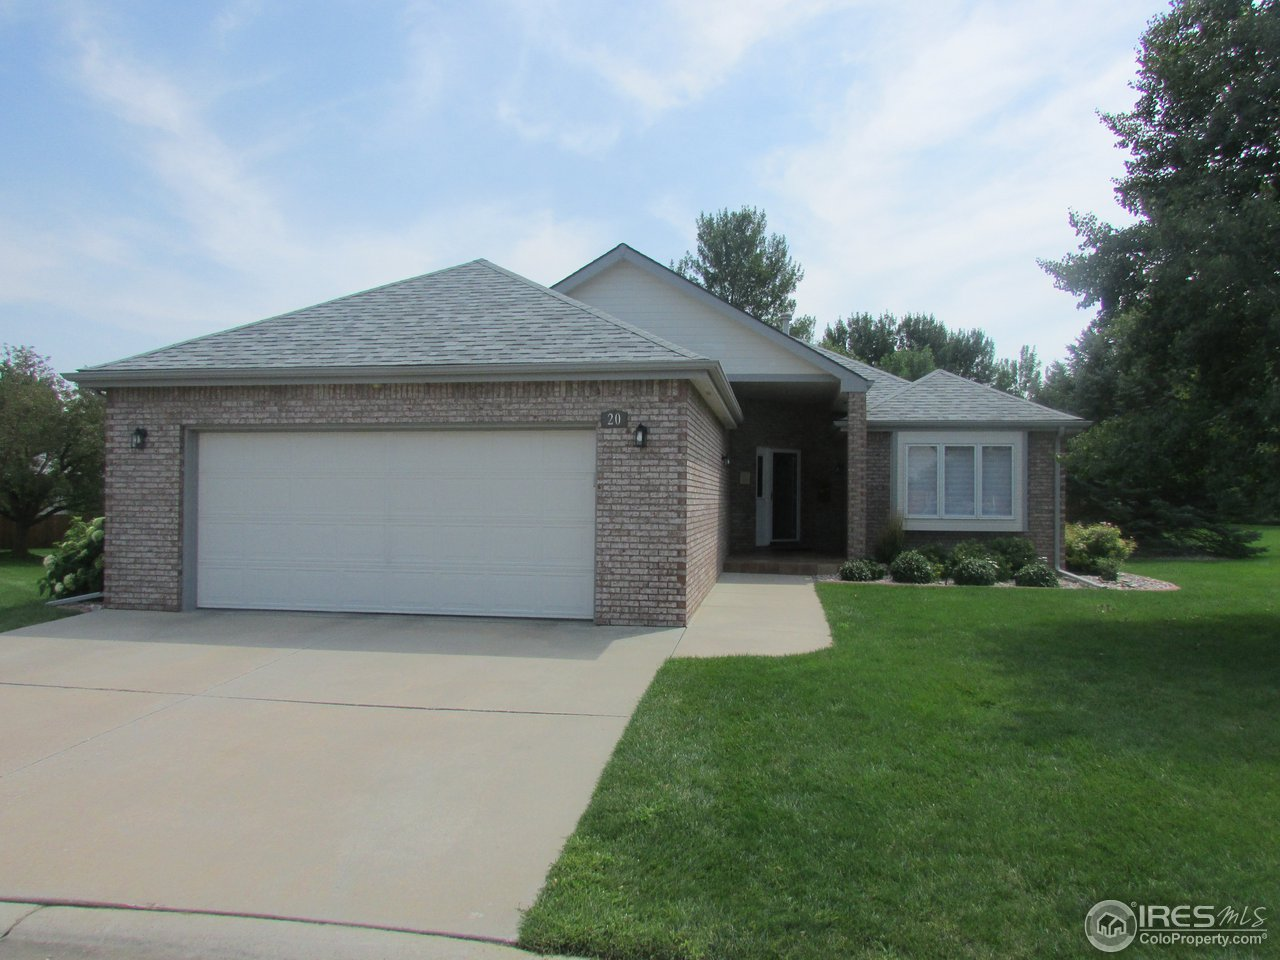 Pristine Stylish Brick Ranch Patio Home in lovely Koala Kourt includes 3 Bdrms. 3 baths, hardwood floors, formal dining room, 2 gas fpls., large eat-in kitchen w/ Quartz counters, custom cabinets & tile flooring, Master suite w/ attached 3/4 bath & walk-in closet, mostly finished basement w/ large Rec room, wet bar, bdrm. & 3/4 bath, custom finishes throughout & more. Attached over-sized 483 SF 2-car garage. Lush mait. free landscaping w/ tiled patio adjacent to beautiful green space! A Beauty!